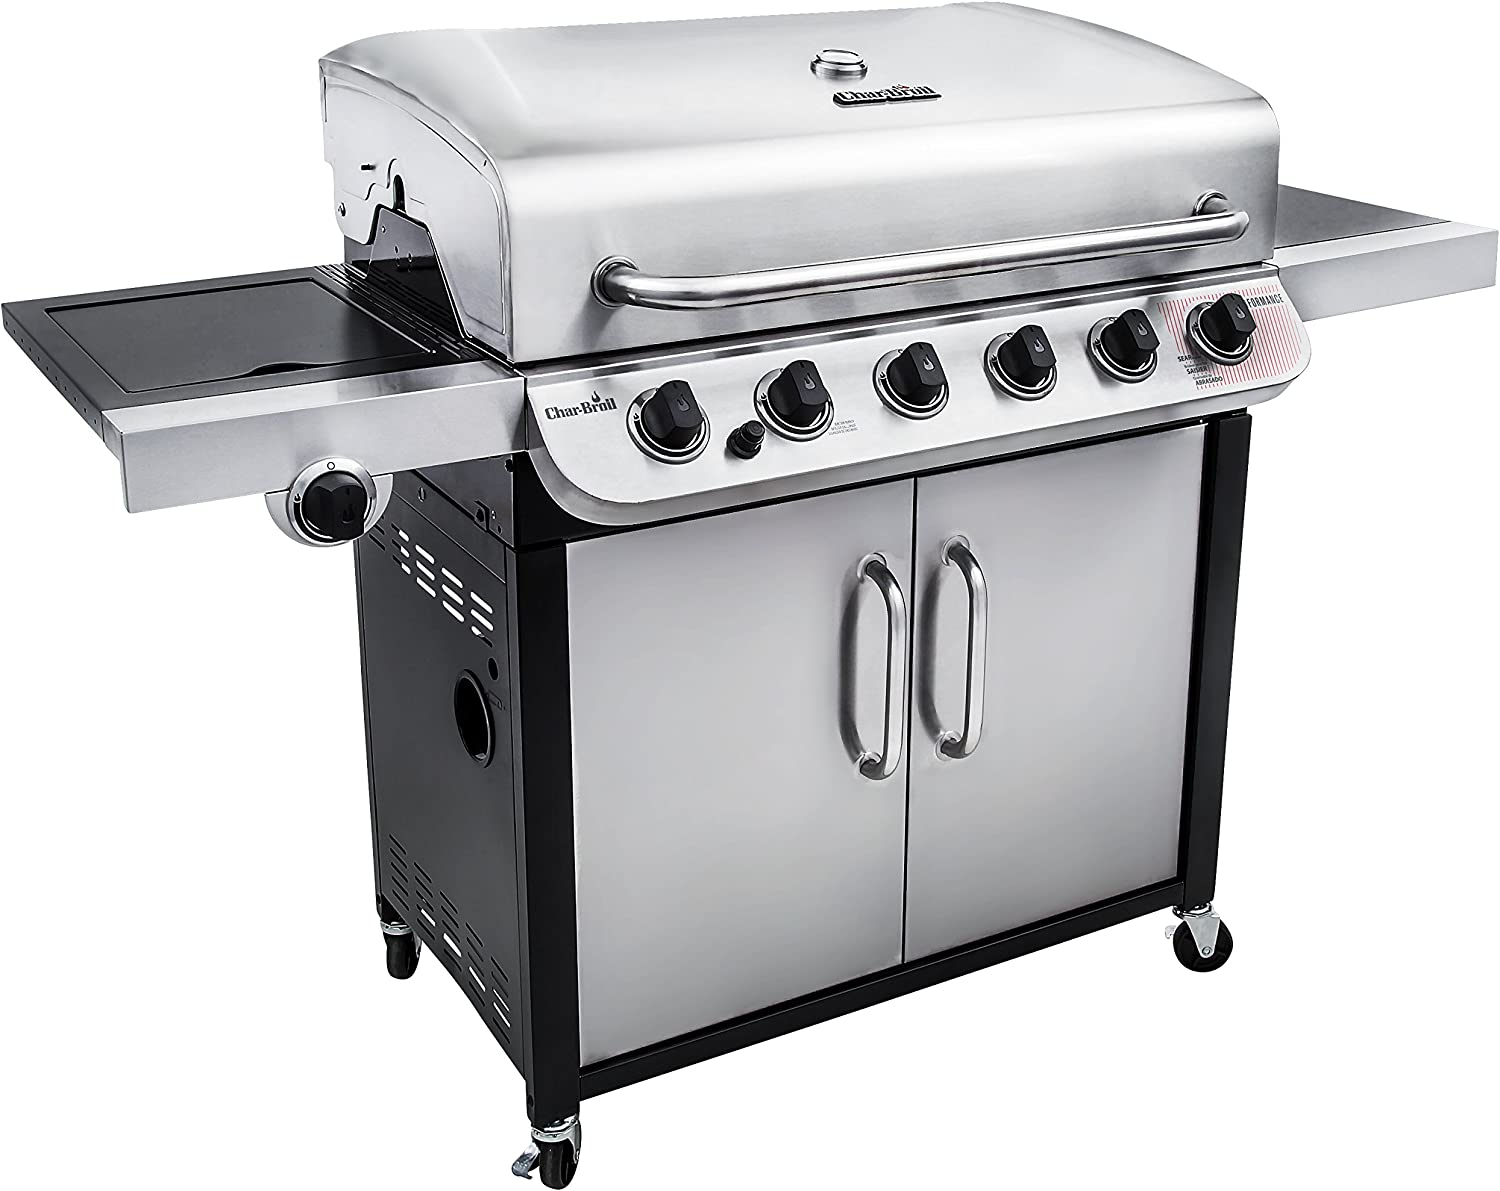 Char-Broil Performance 650 6-Burner Cabinet Liquid Propane Gas Grill review